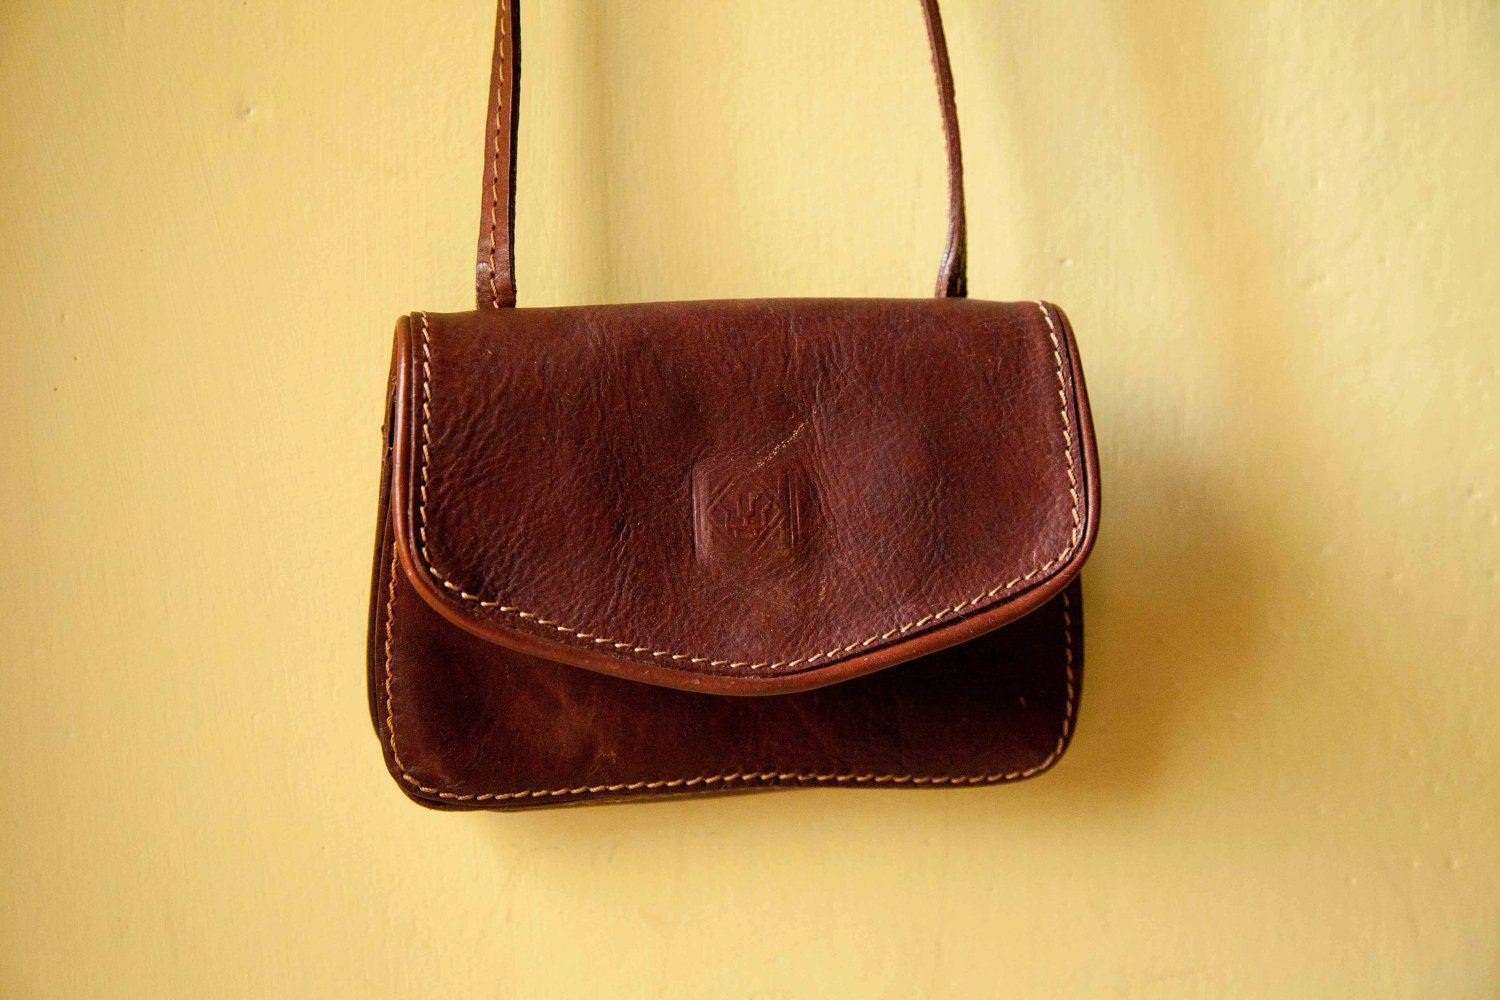 70s Vintage Leather Bag Brown Shoulder Made In Italy From Florence 30 00 Via Etsy